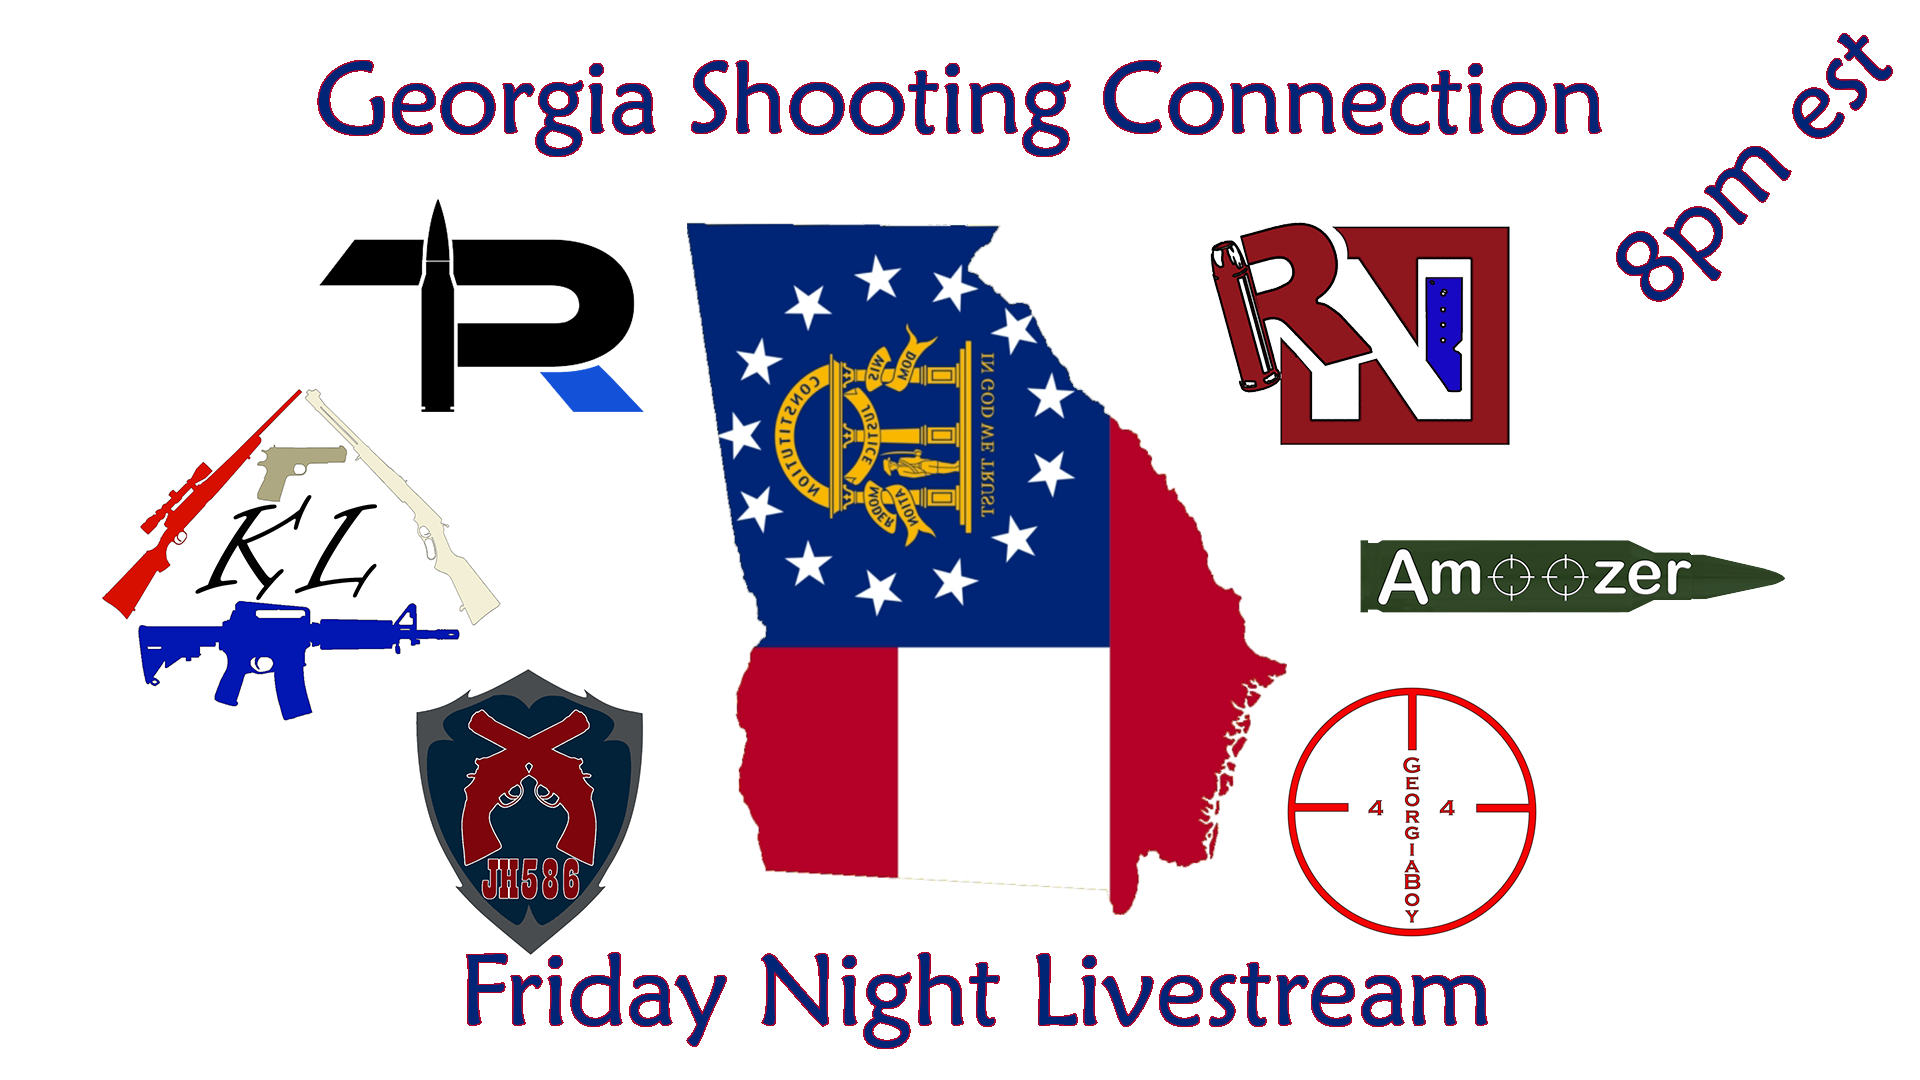 Georgia Shooting Connection Friday Night Live Stream 4/12/19 44